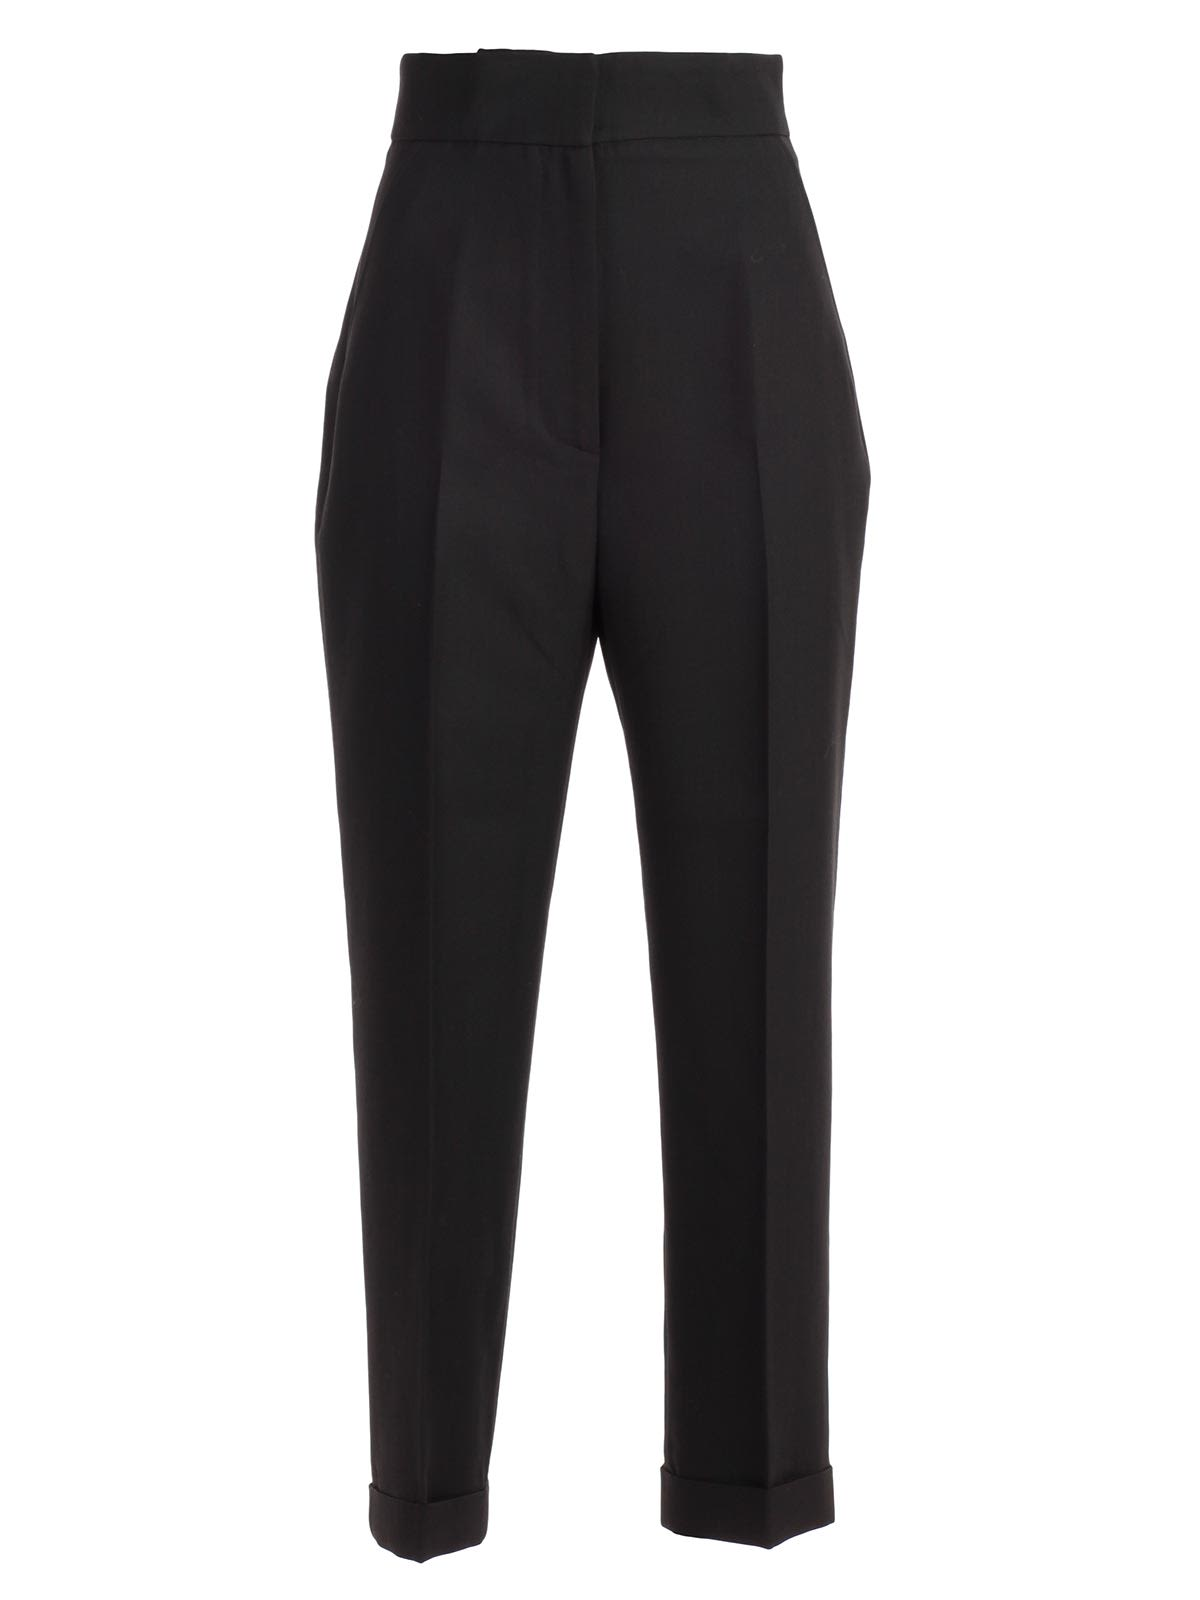 Jacquemus Slim Pleated Trousers